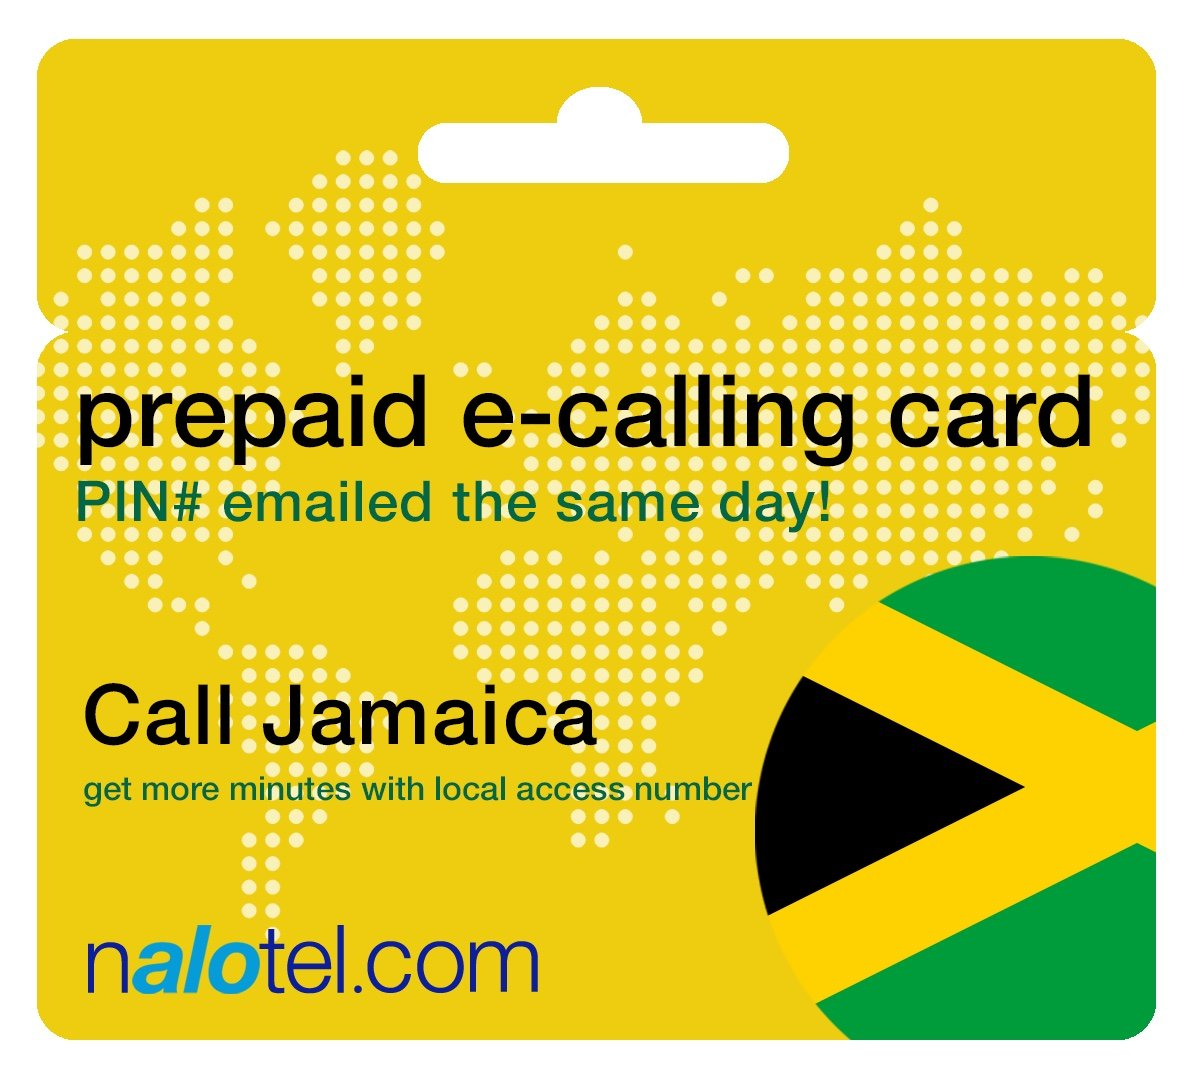 Prepaid Phone Card - Cheap International E-Calling Card $20 for Jamaica with same day emailed PIN, no postage necessary by Nalotel (Image #1)